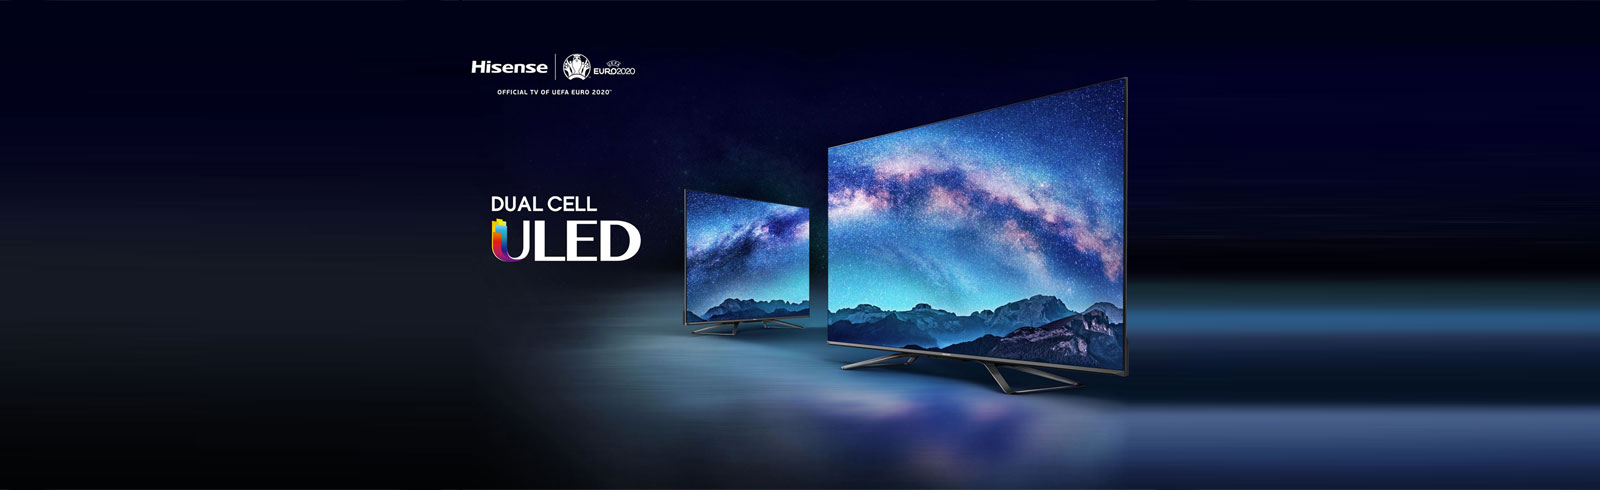 The Dual Cell 4K Hisense U9X (H65U9X) is unveiled at CES 2020